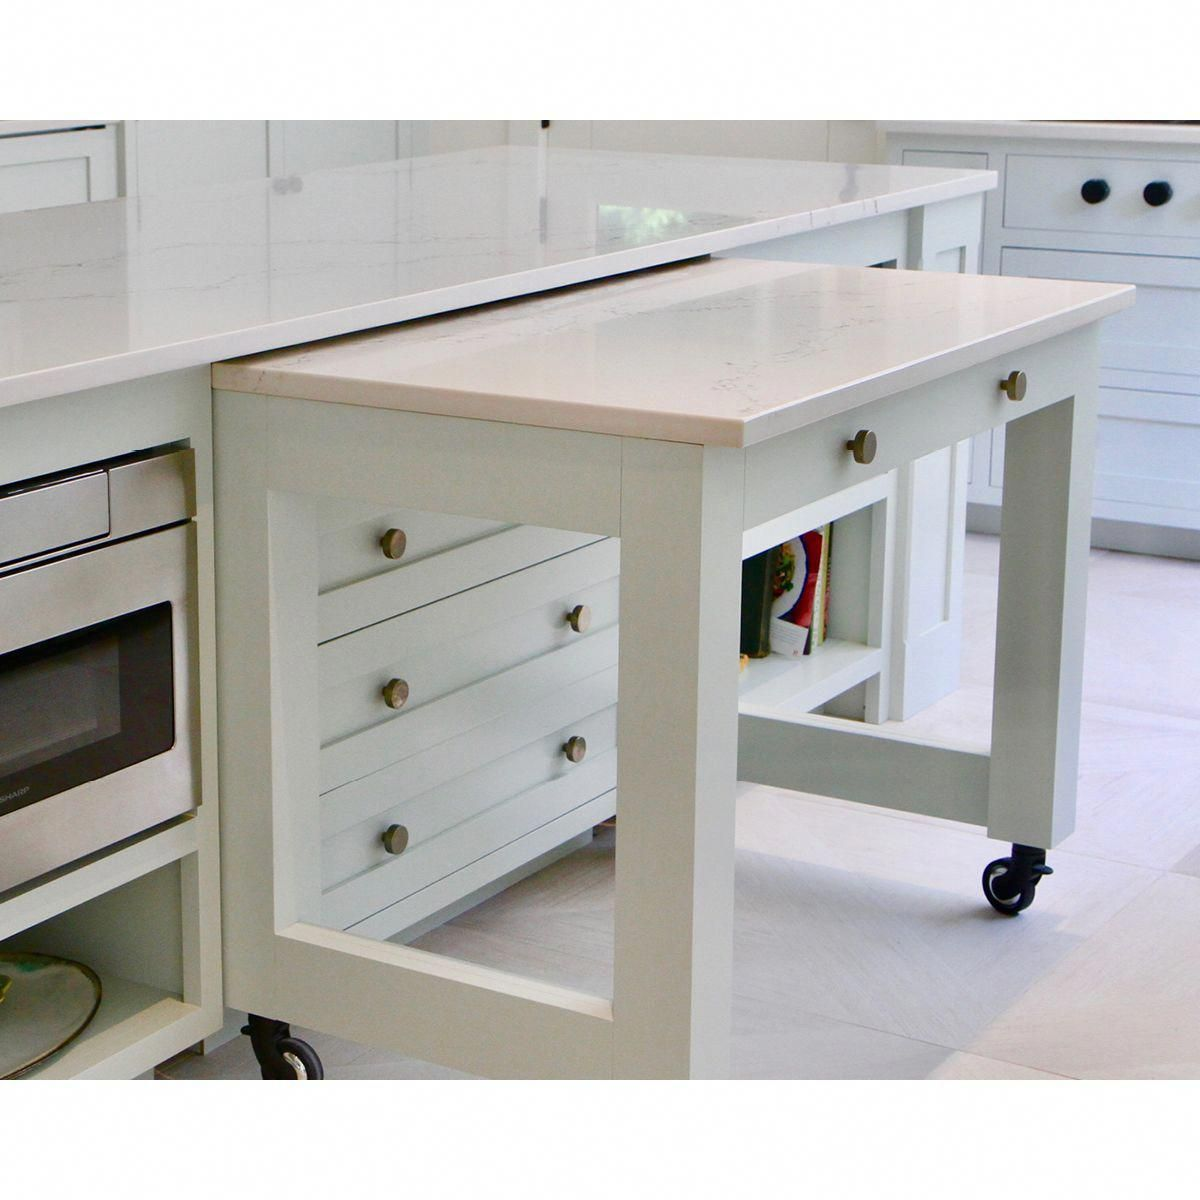 Now You See It Now You Don T This Pull Out Countertop Instantly Adds More Countertop Space When You Need Custom Kitchen Cabinets Furniture Kitchen Renovation